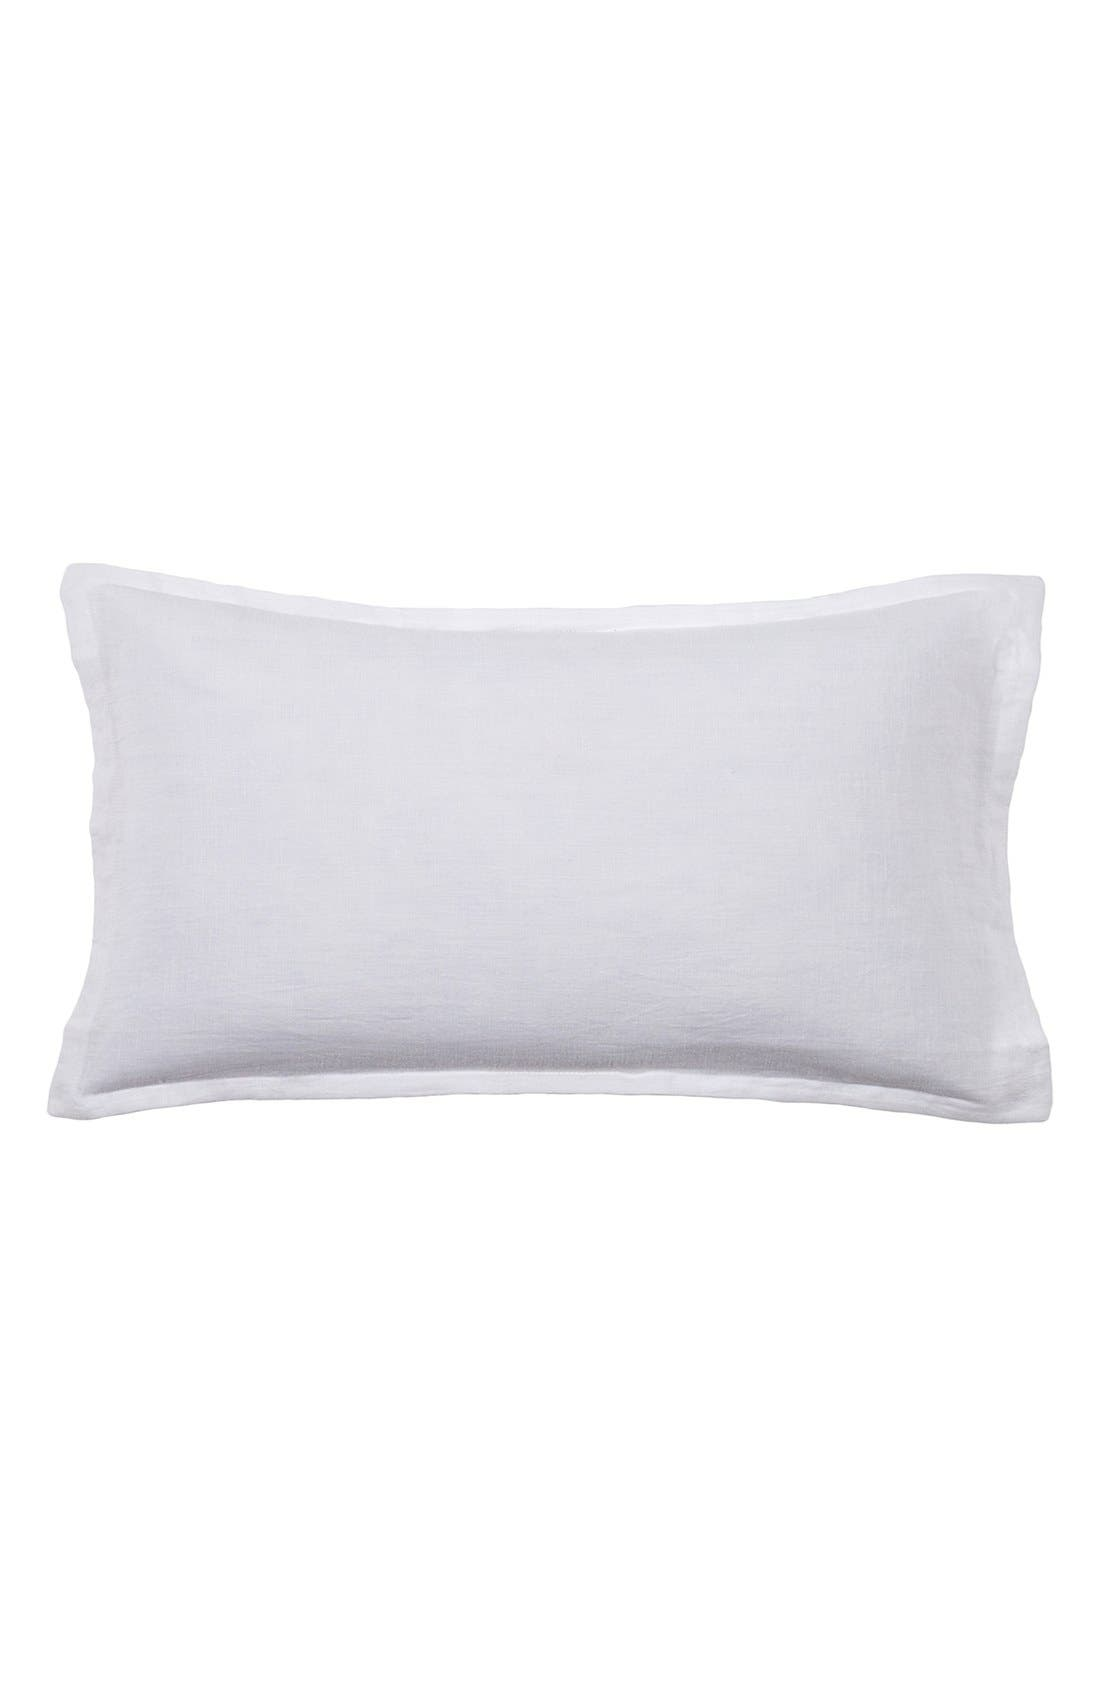 Alternate Image 1 Selected - PomPomat Home 'Louwie' Pillow